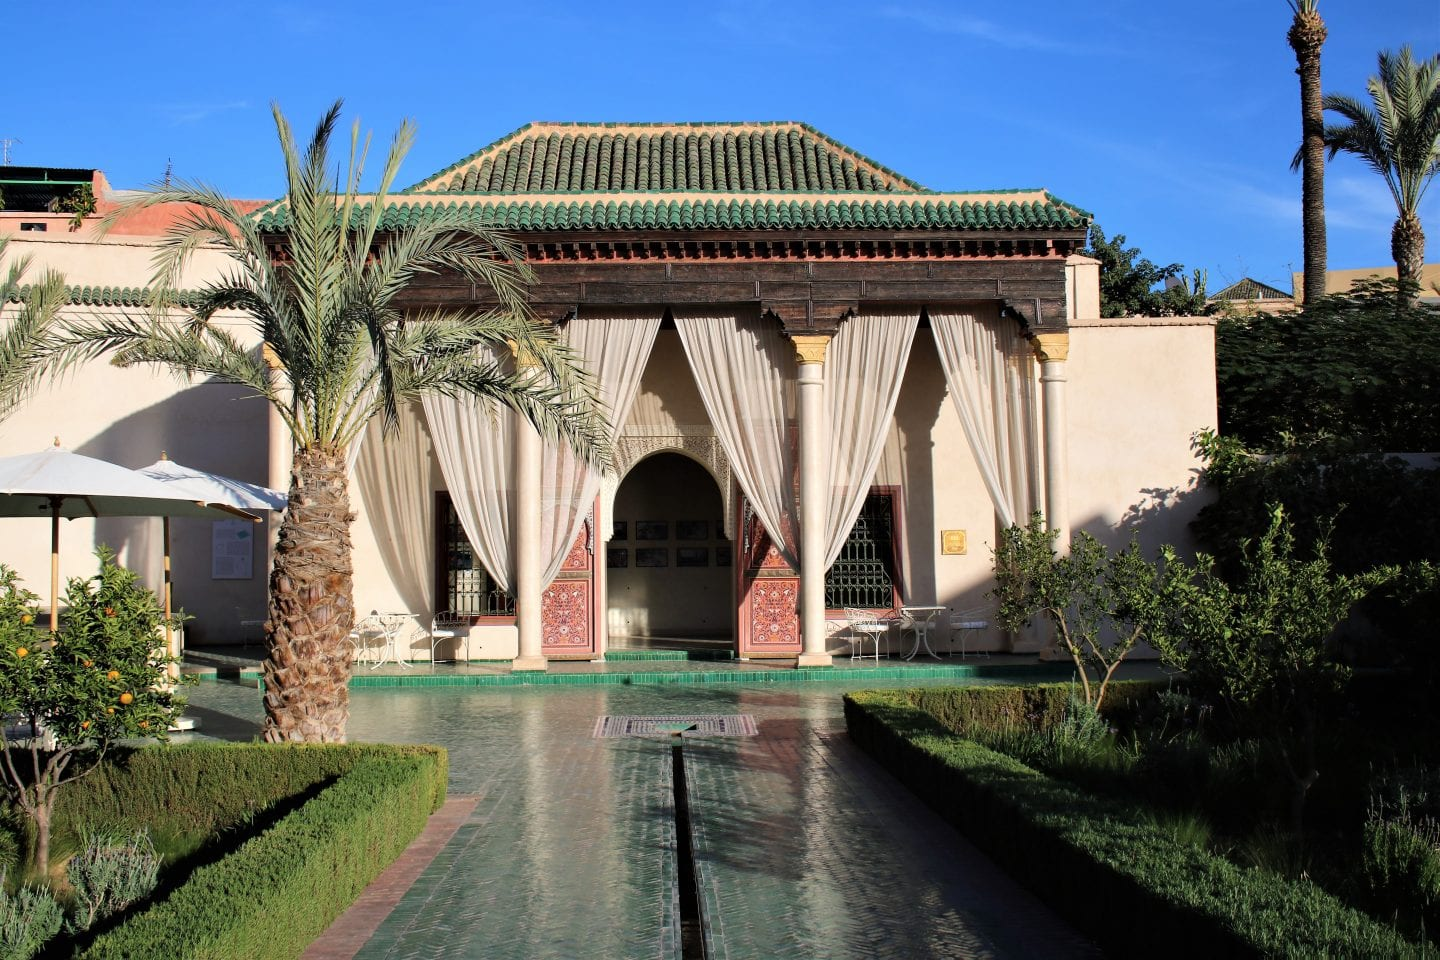 17 Tips For Visiting Marrakech, Morocco